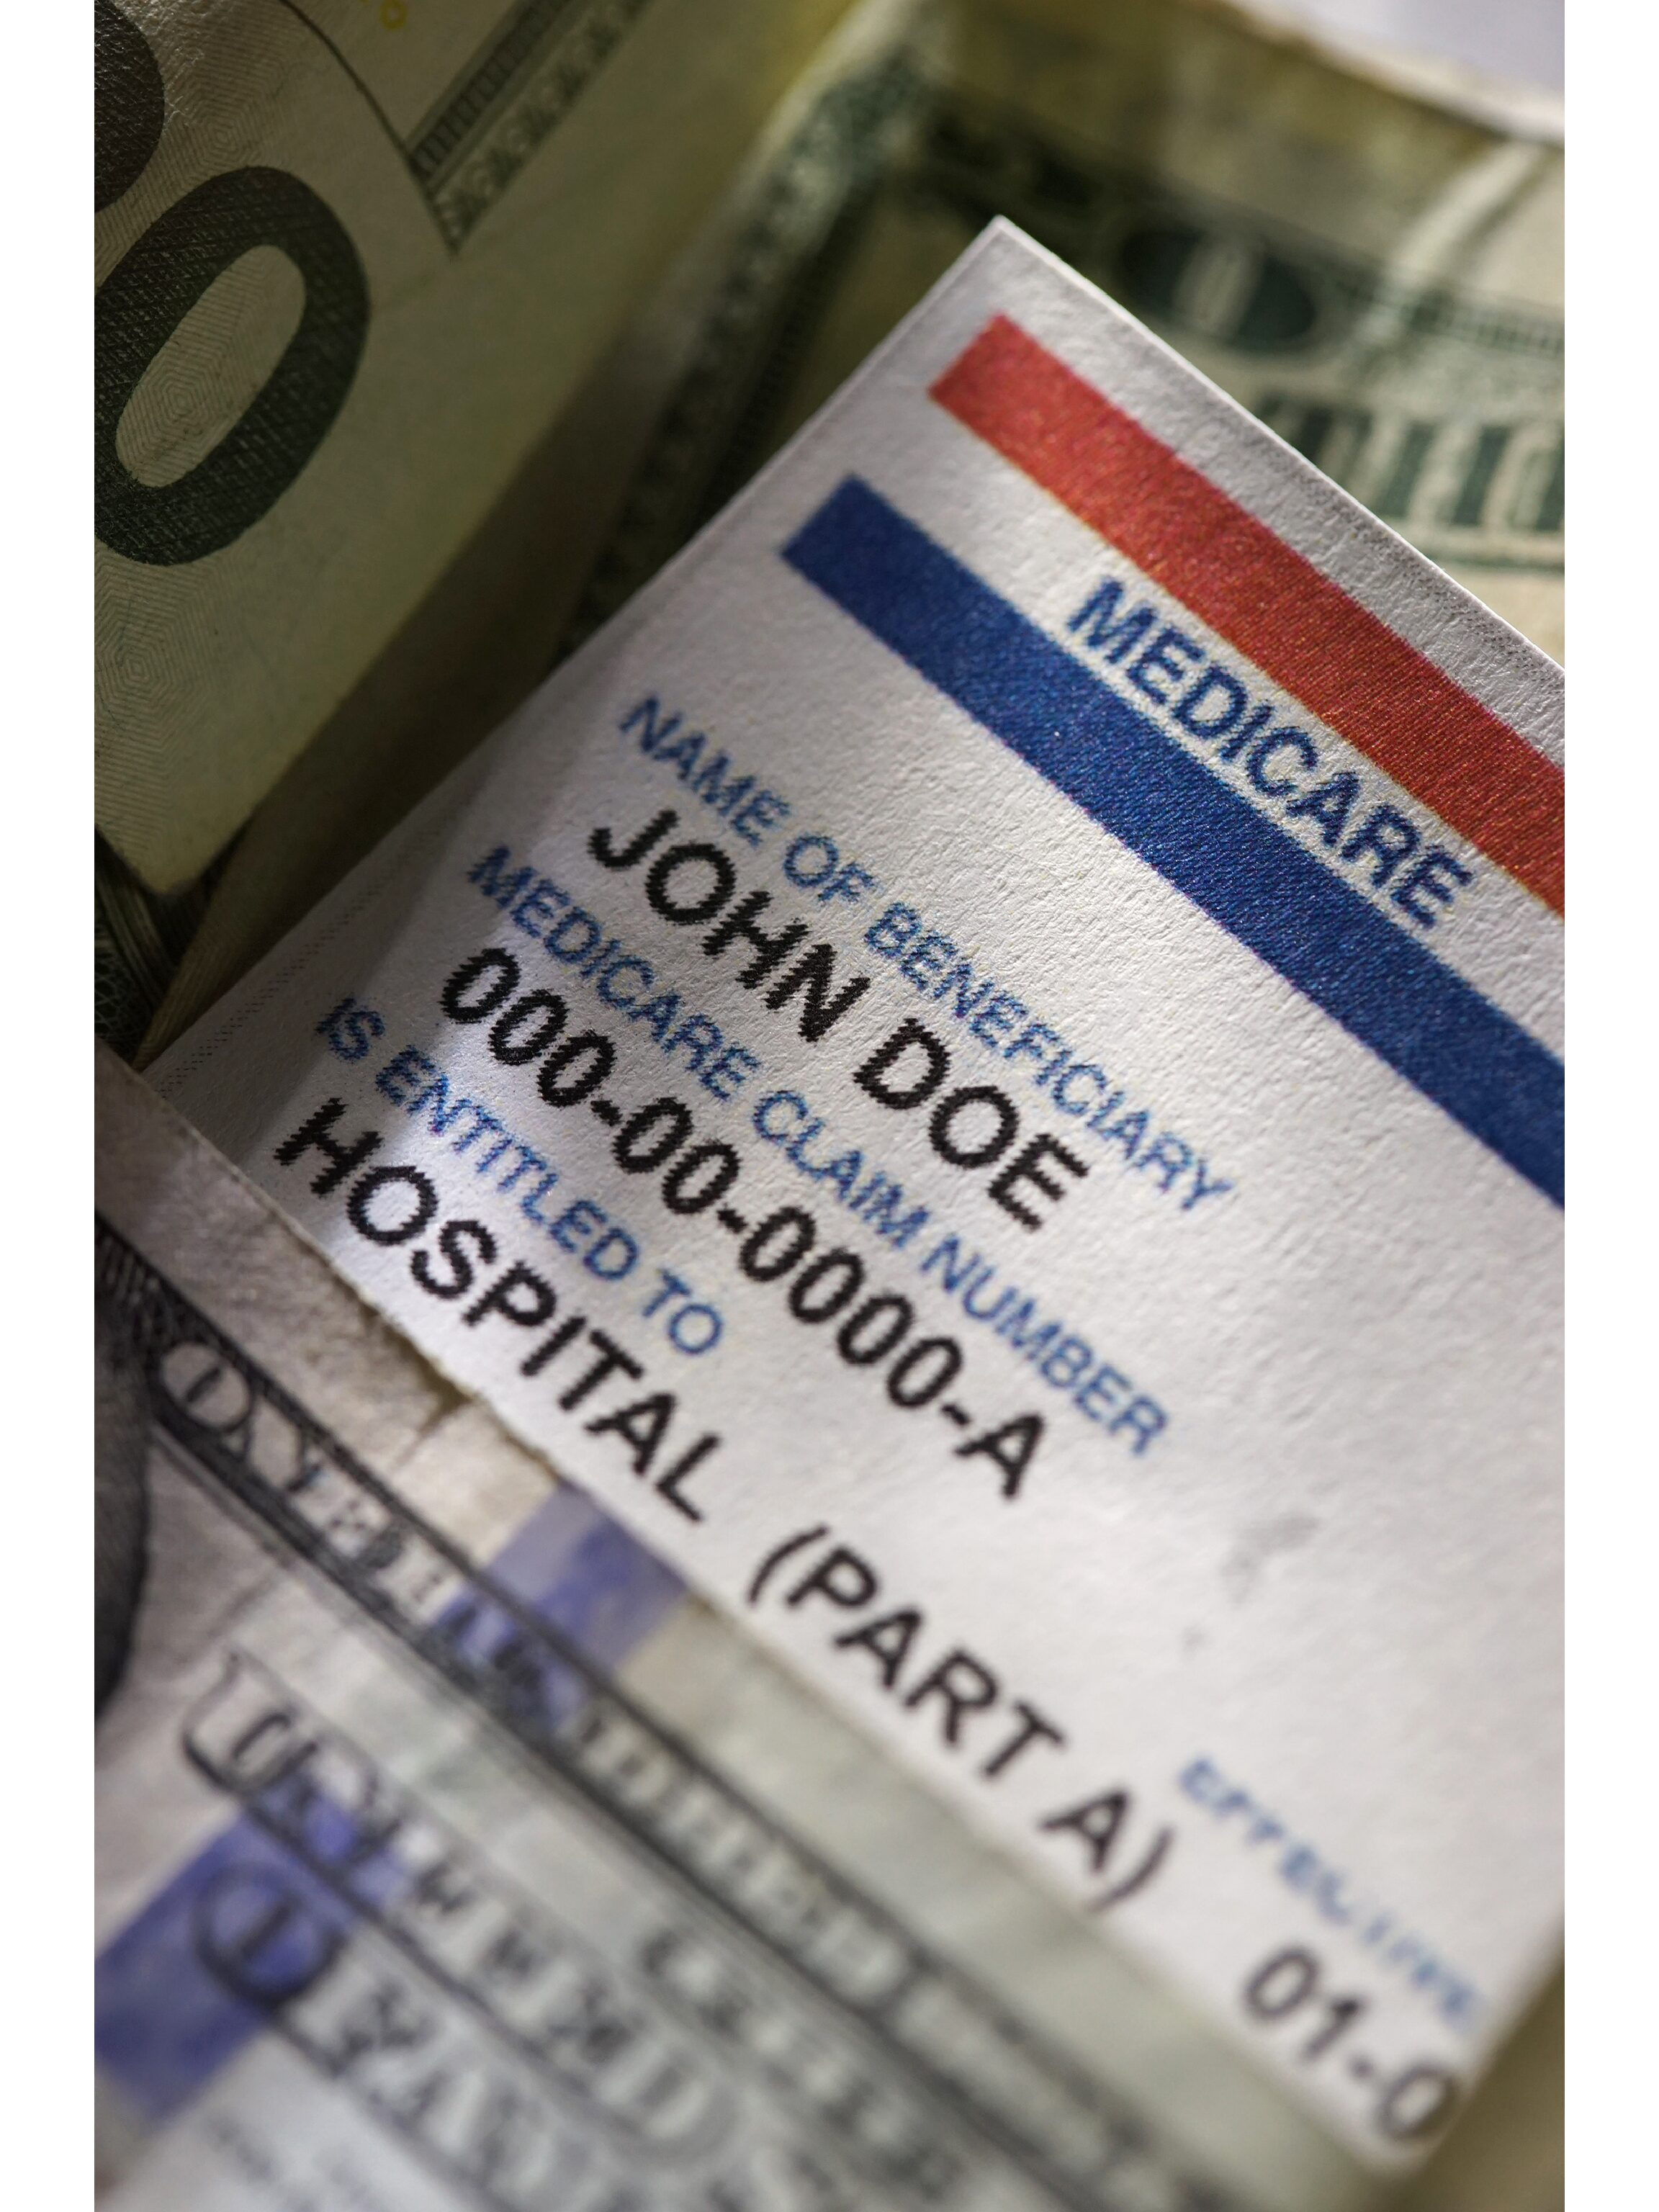 Are you receiving all your Medicare benefits?